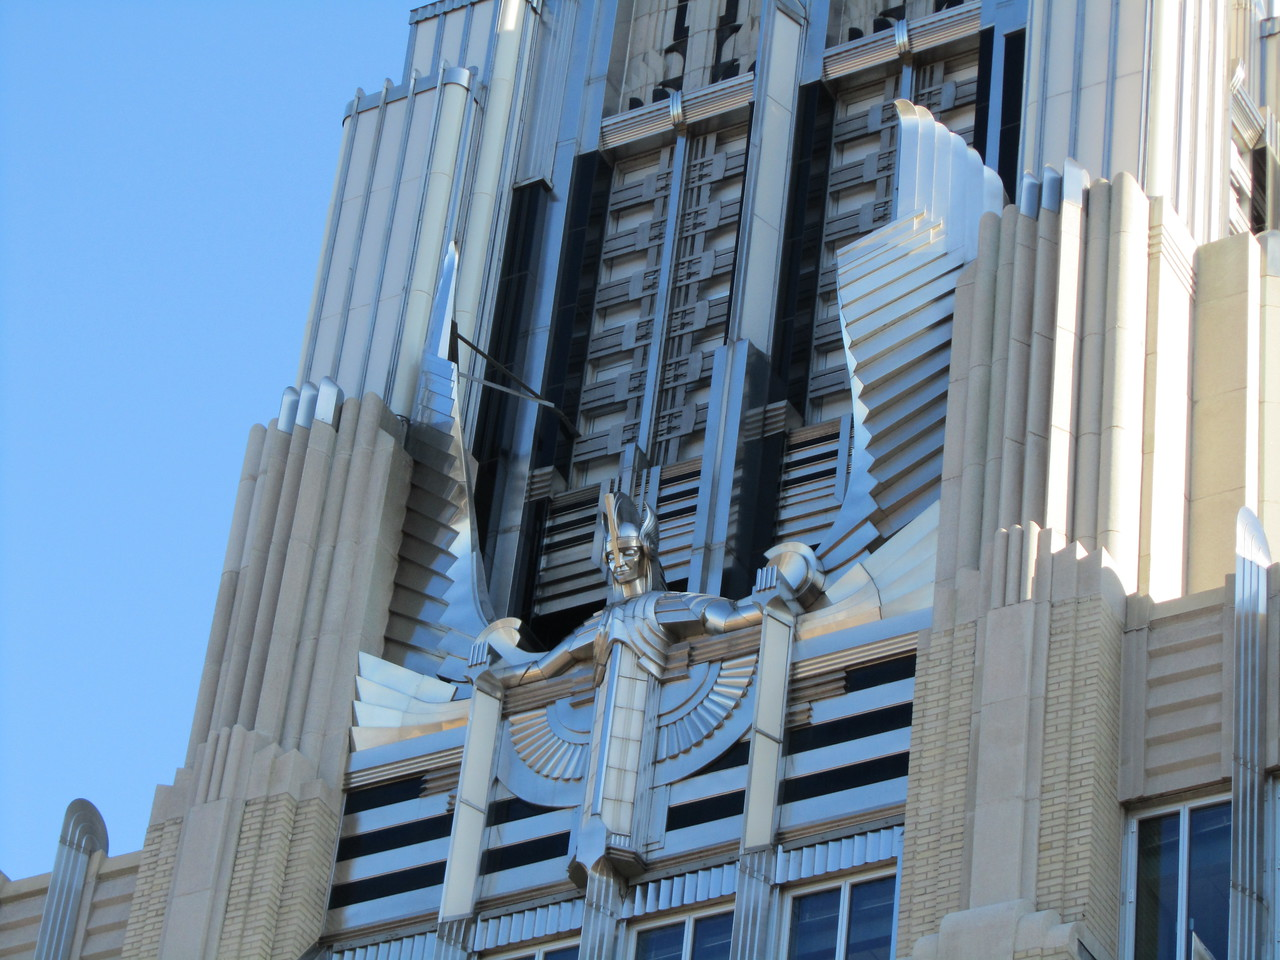 Awesome. We need more art deco.